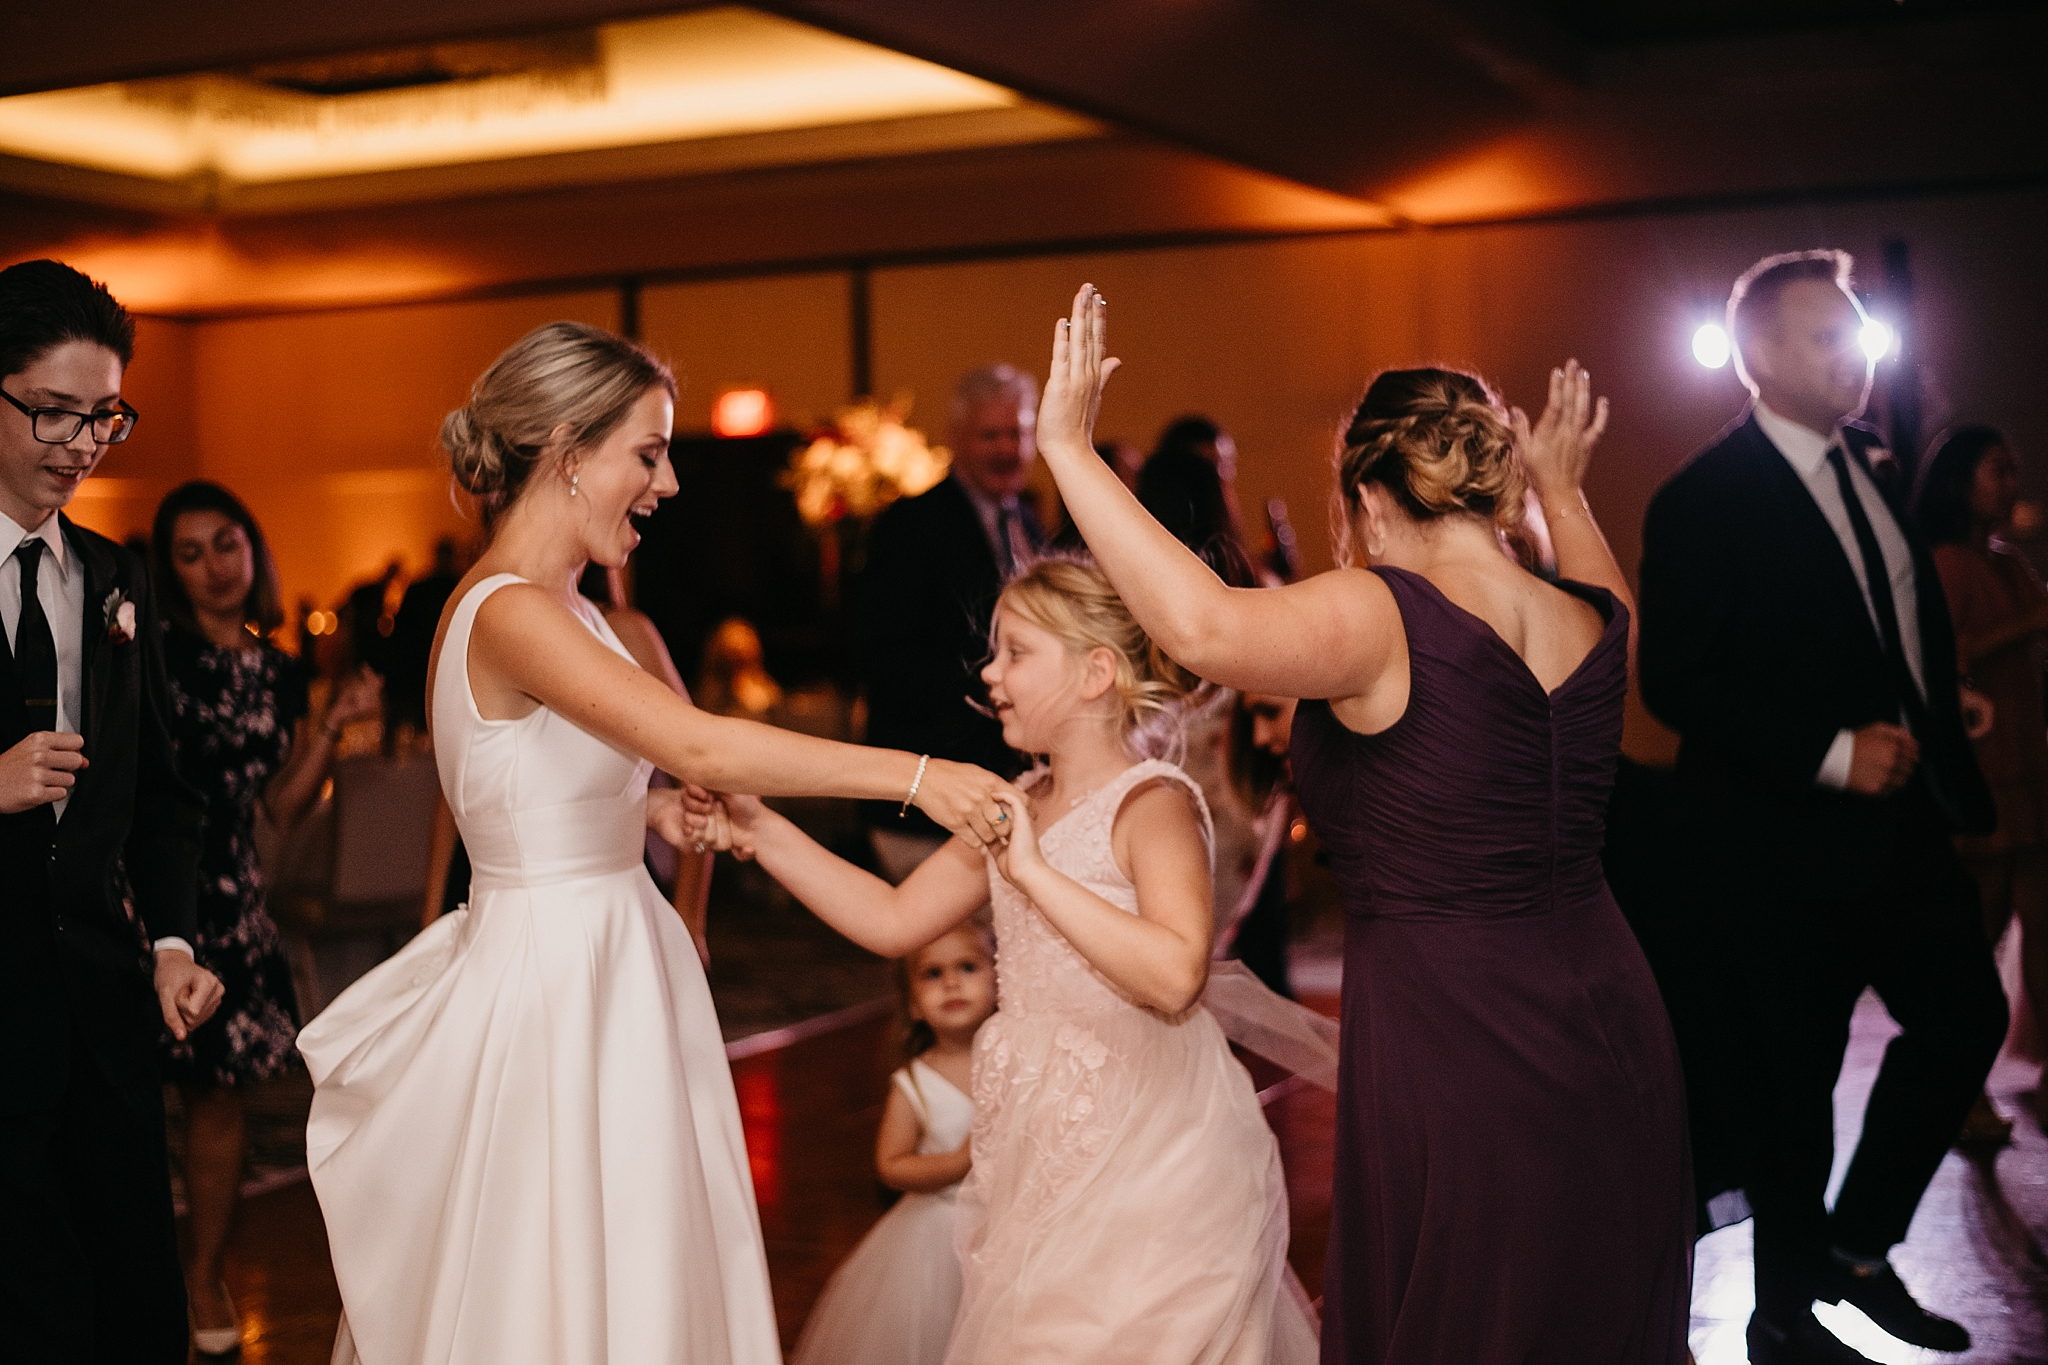 dancing-at-wedding